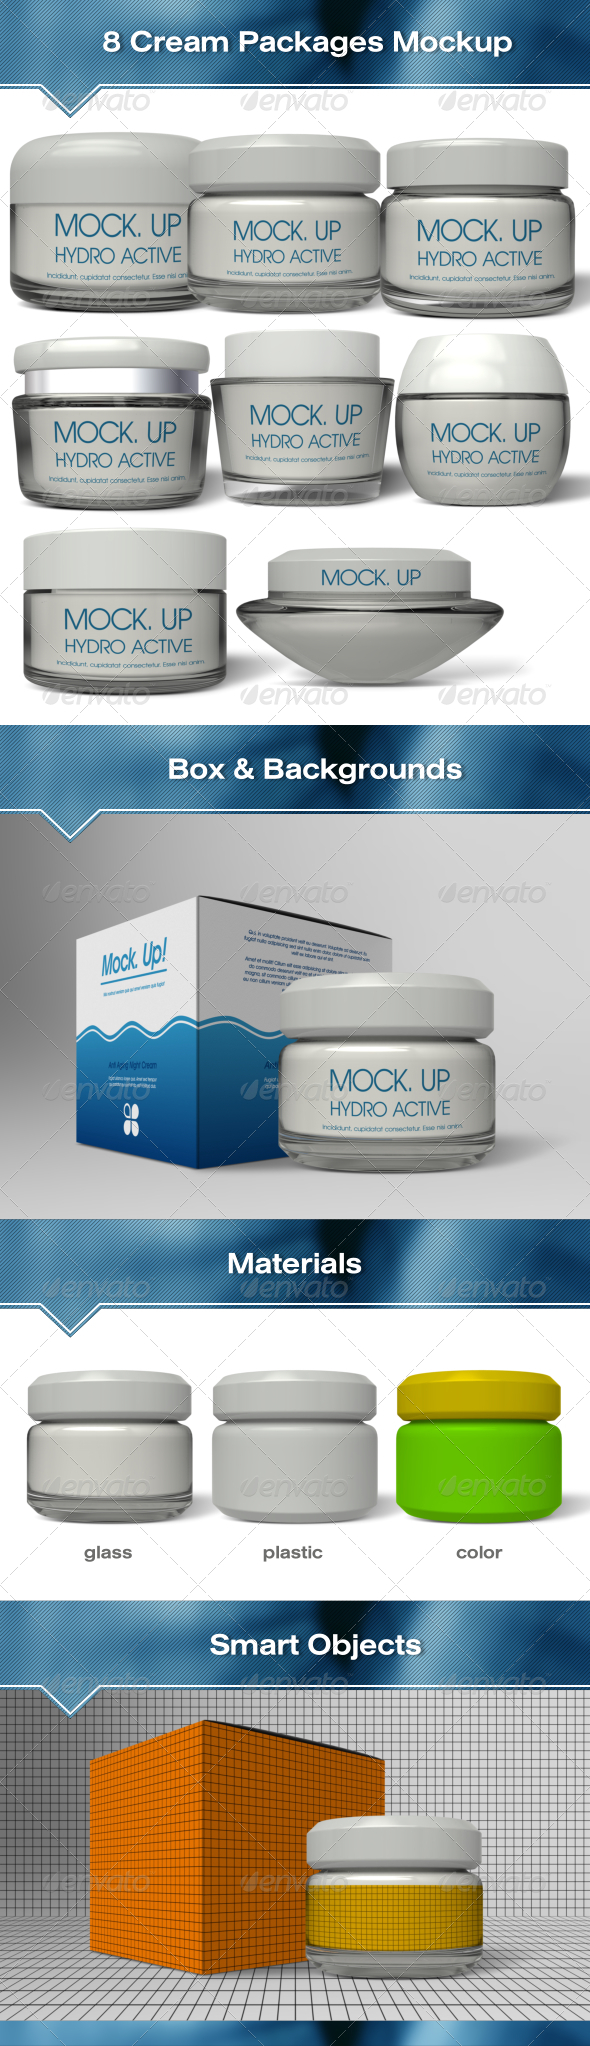 8 Glass & Plastic Cream Packages Mockup